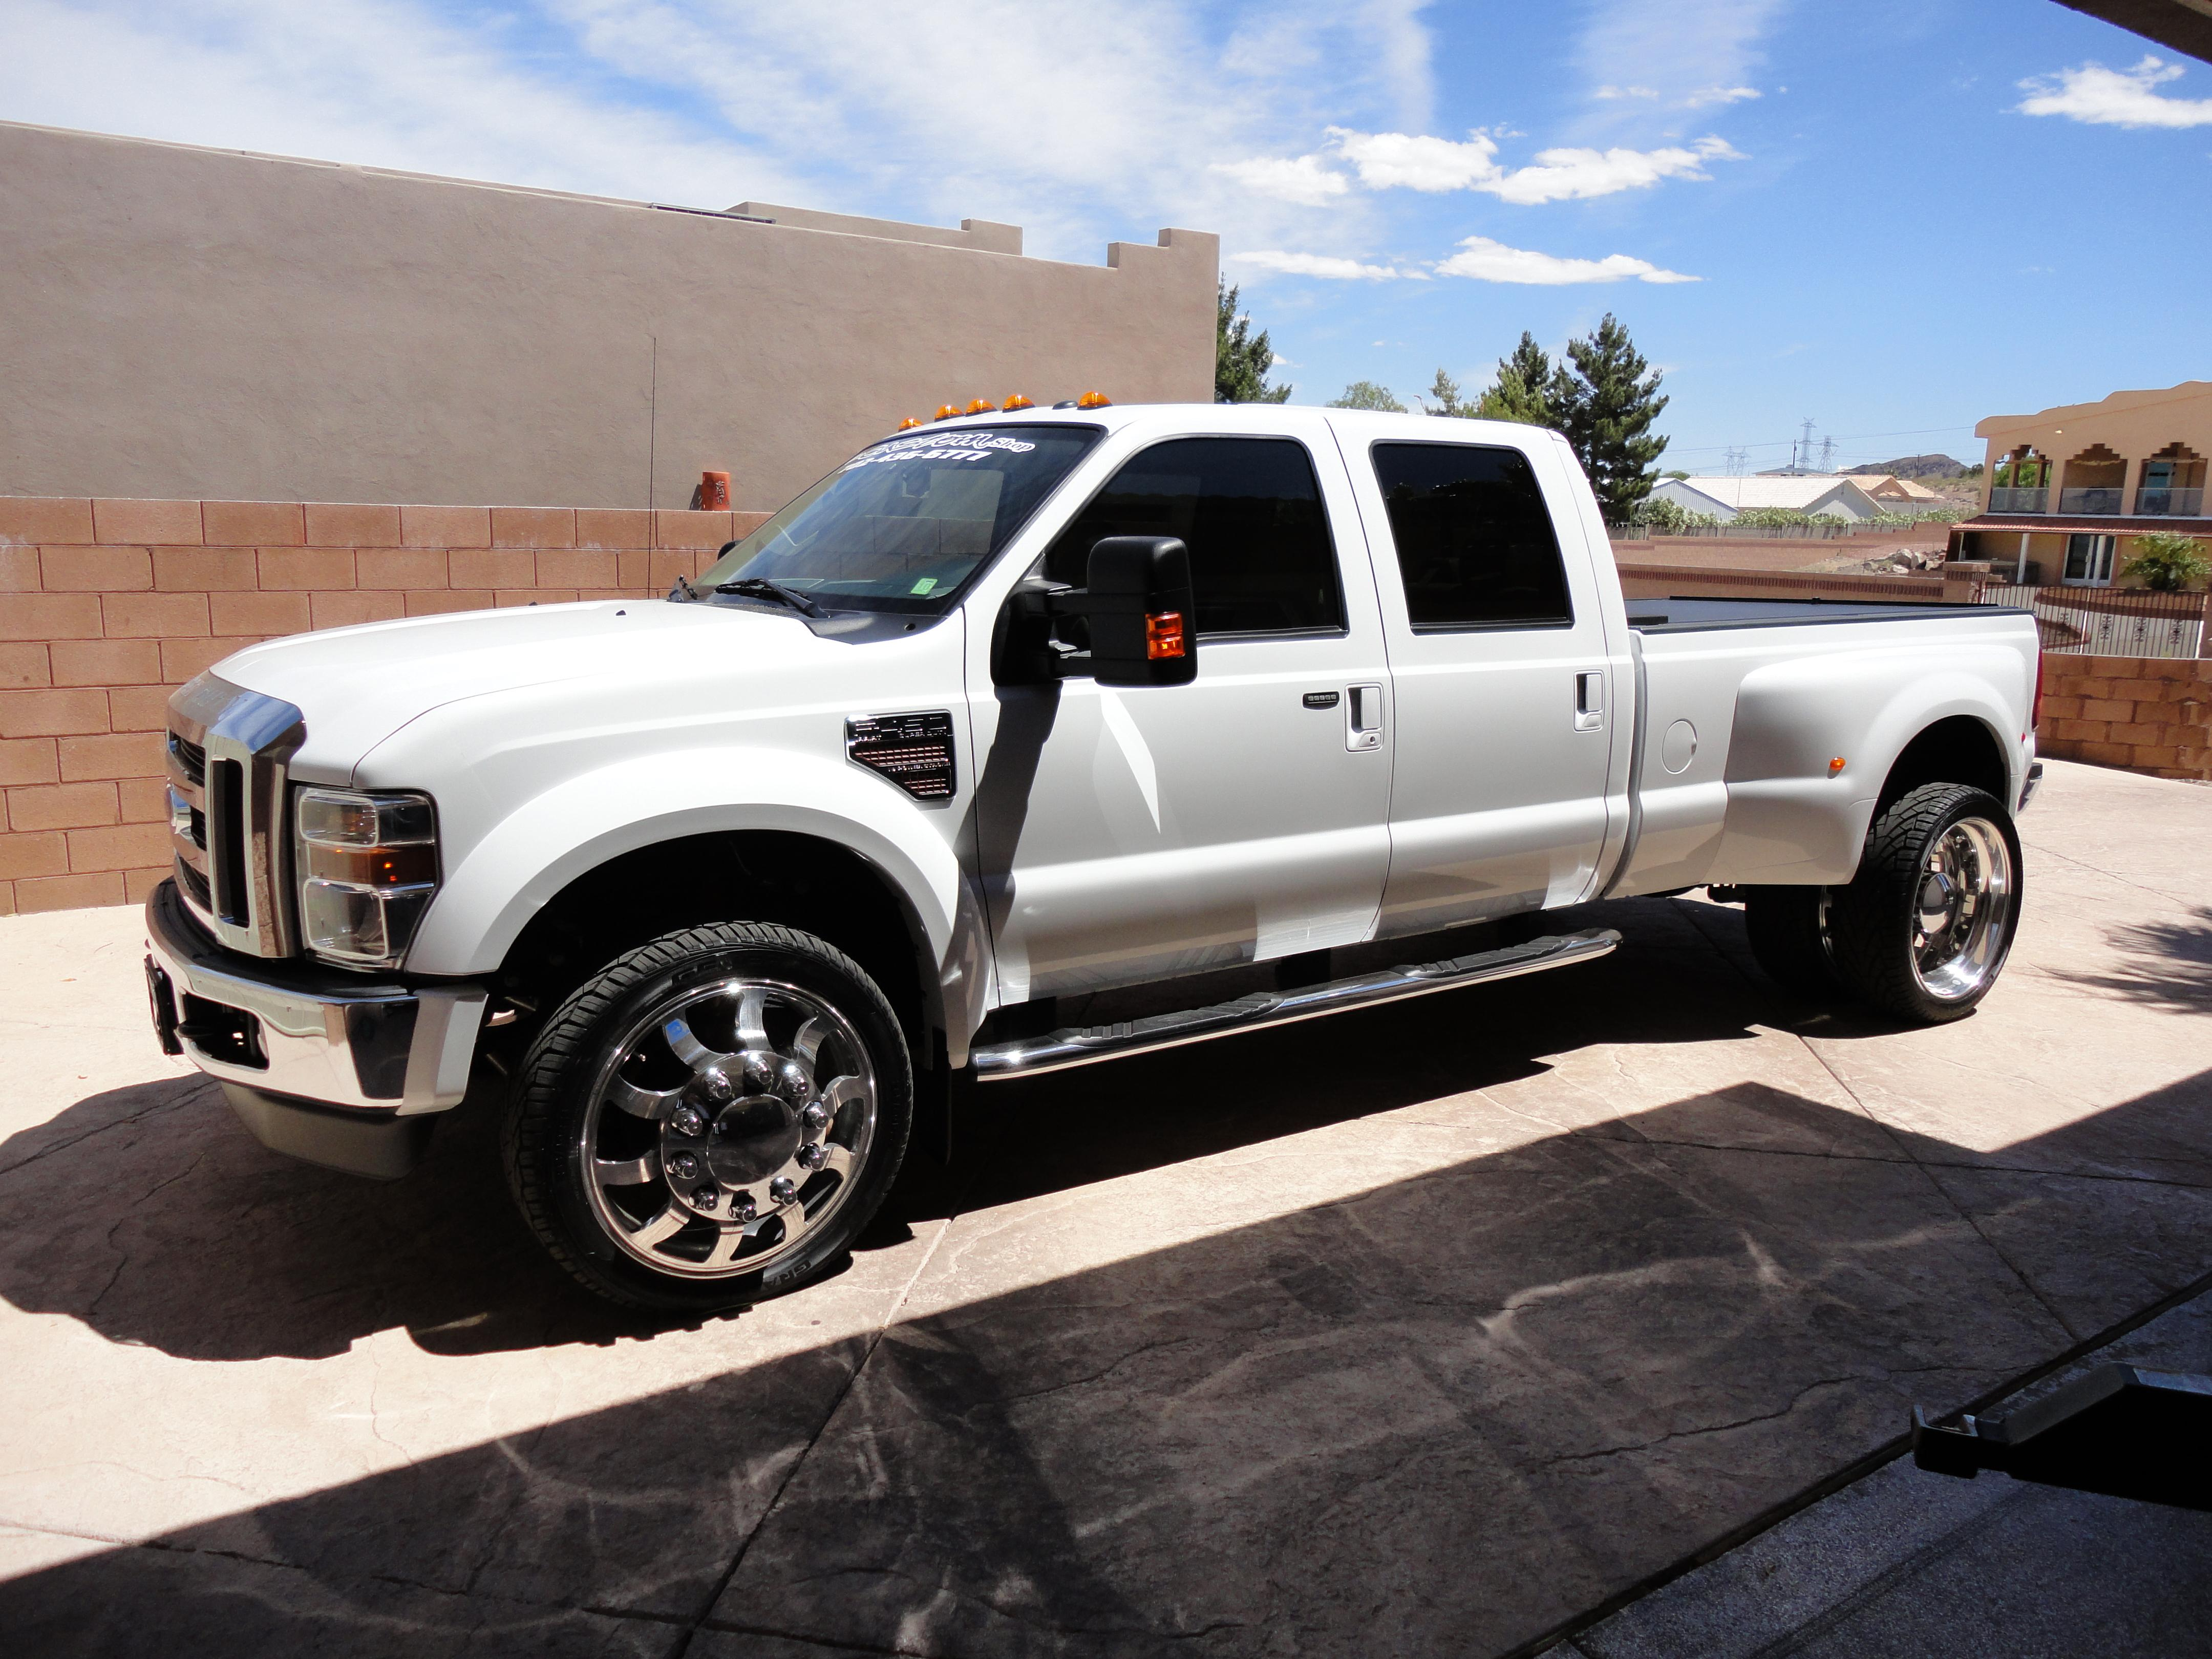 2010 Ford F-450 Super Duty #3